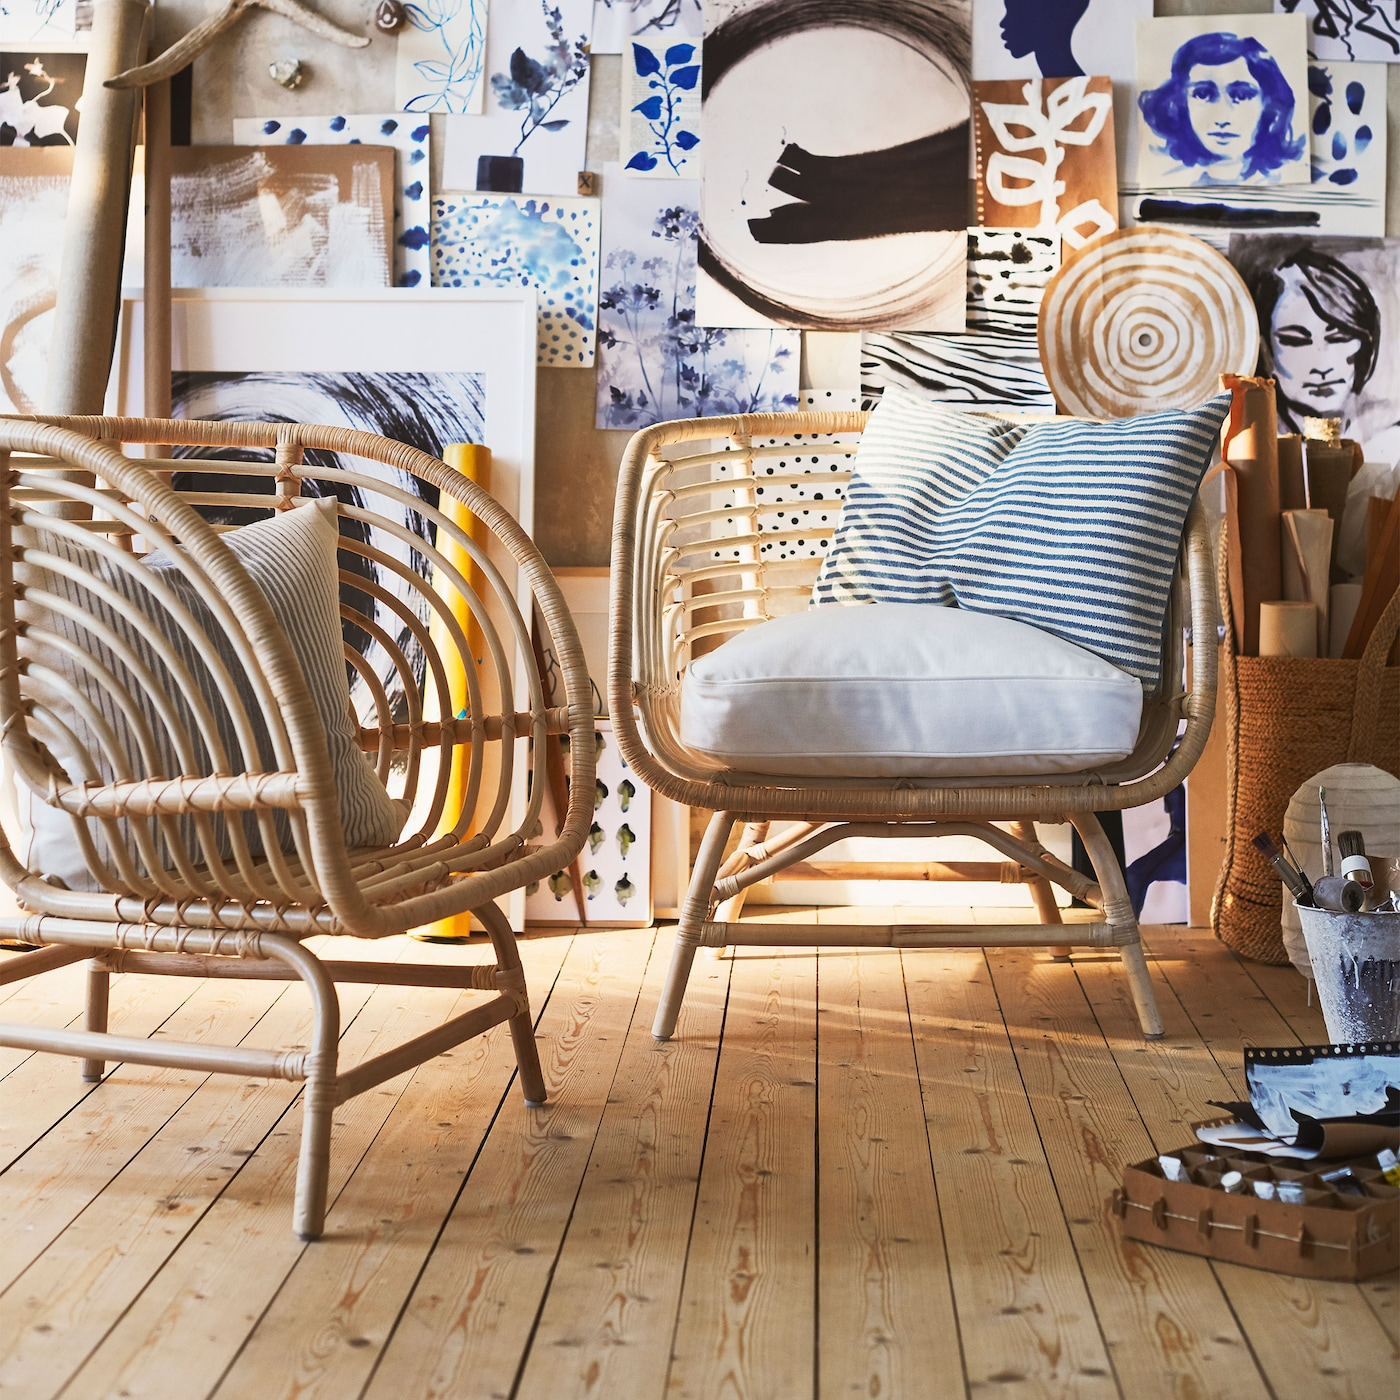 BUSKBO armchair is handwoven from rattan and has a bucket style seat with four wide, low legs for a natural, eclectic look.